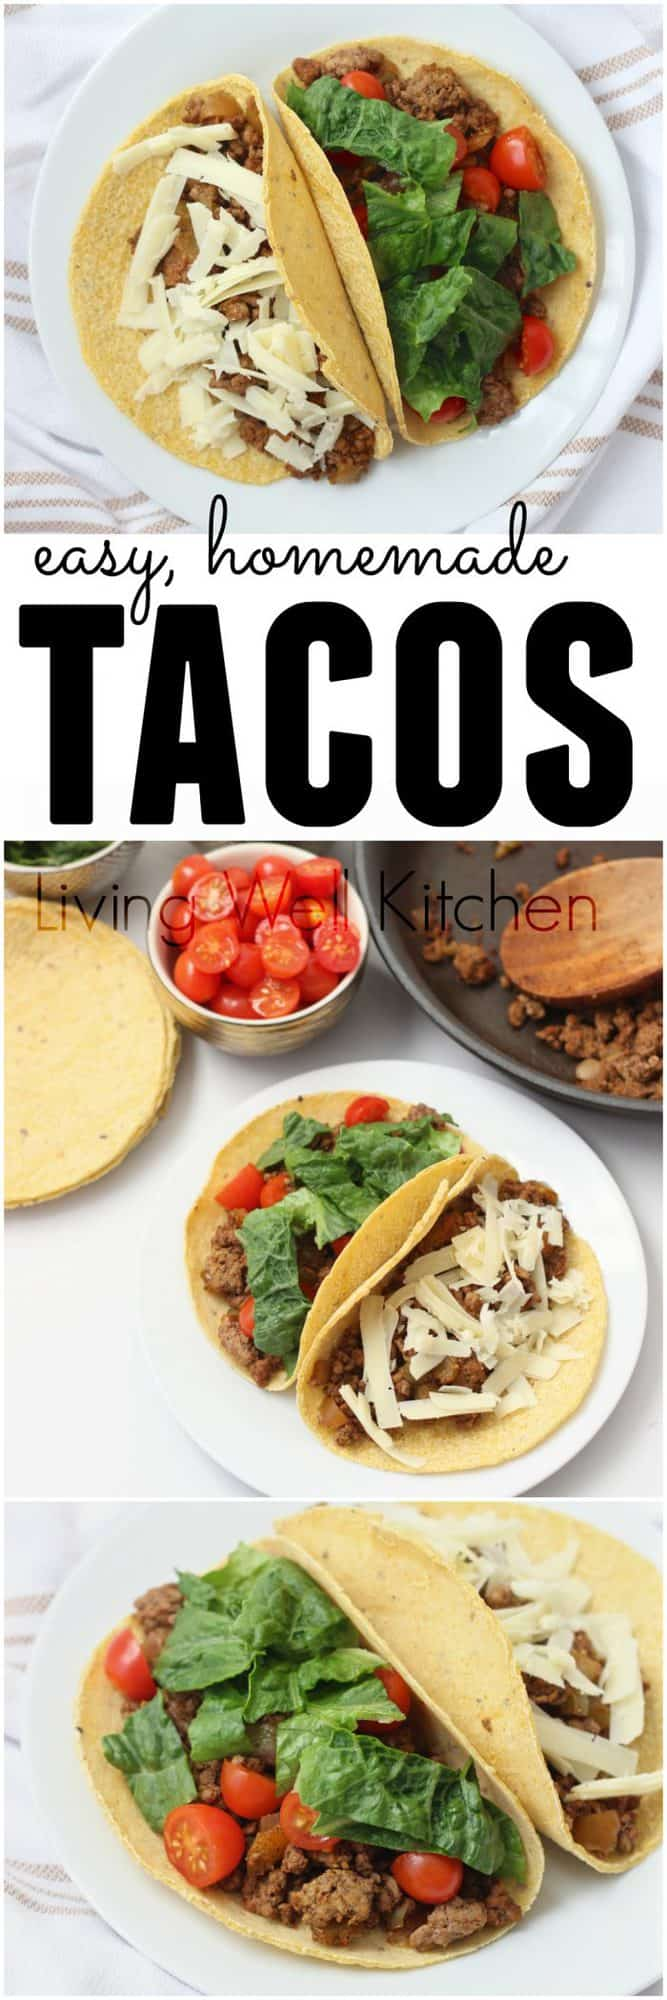 Ground Beef Tacos from @memeinge. A favorite easy recipe for ground beef tacos that doesn't use taco seasoning packets. Customize the toppings for your family! Gluten free, dairy free